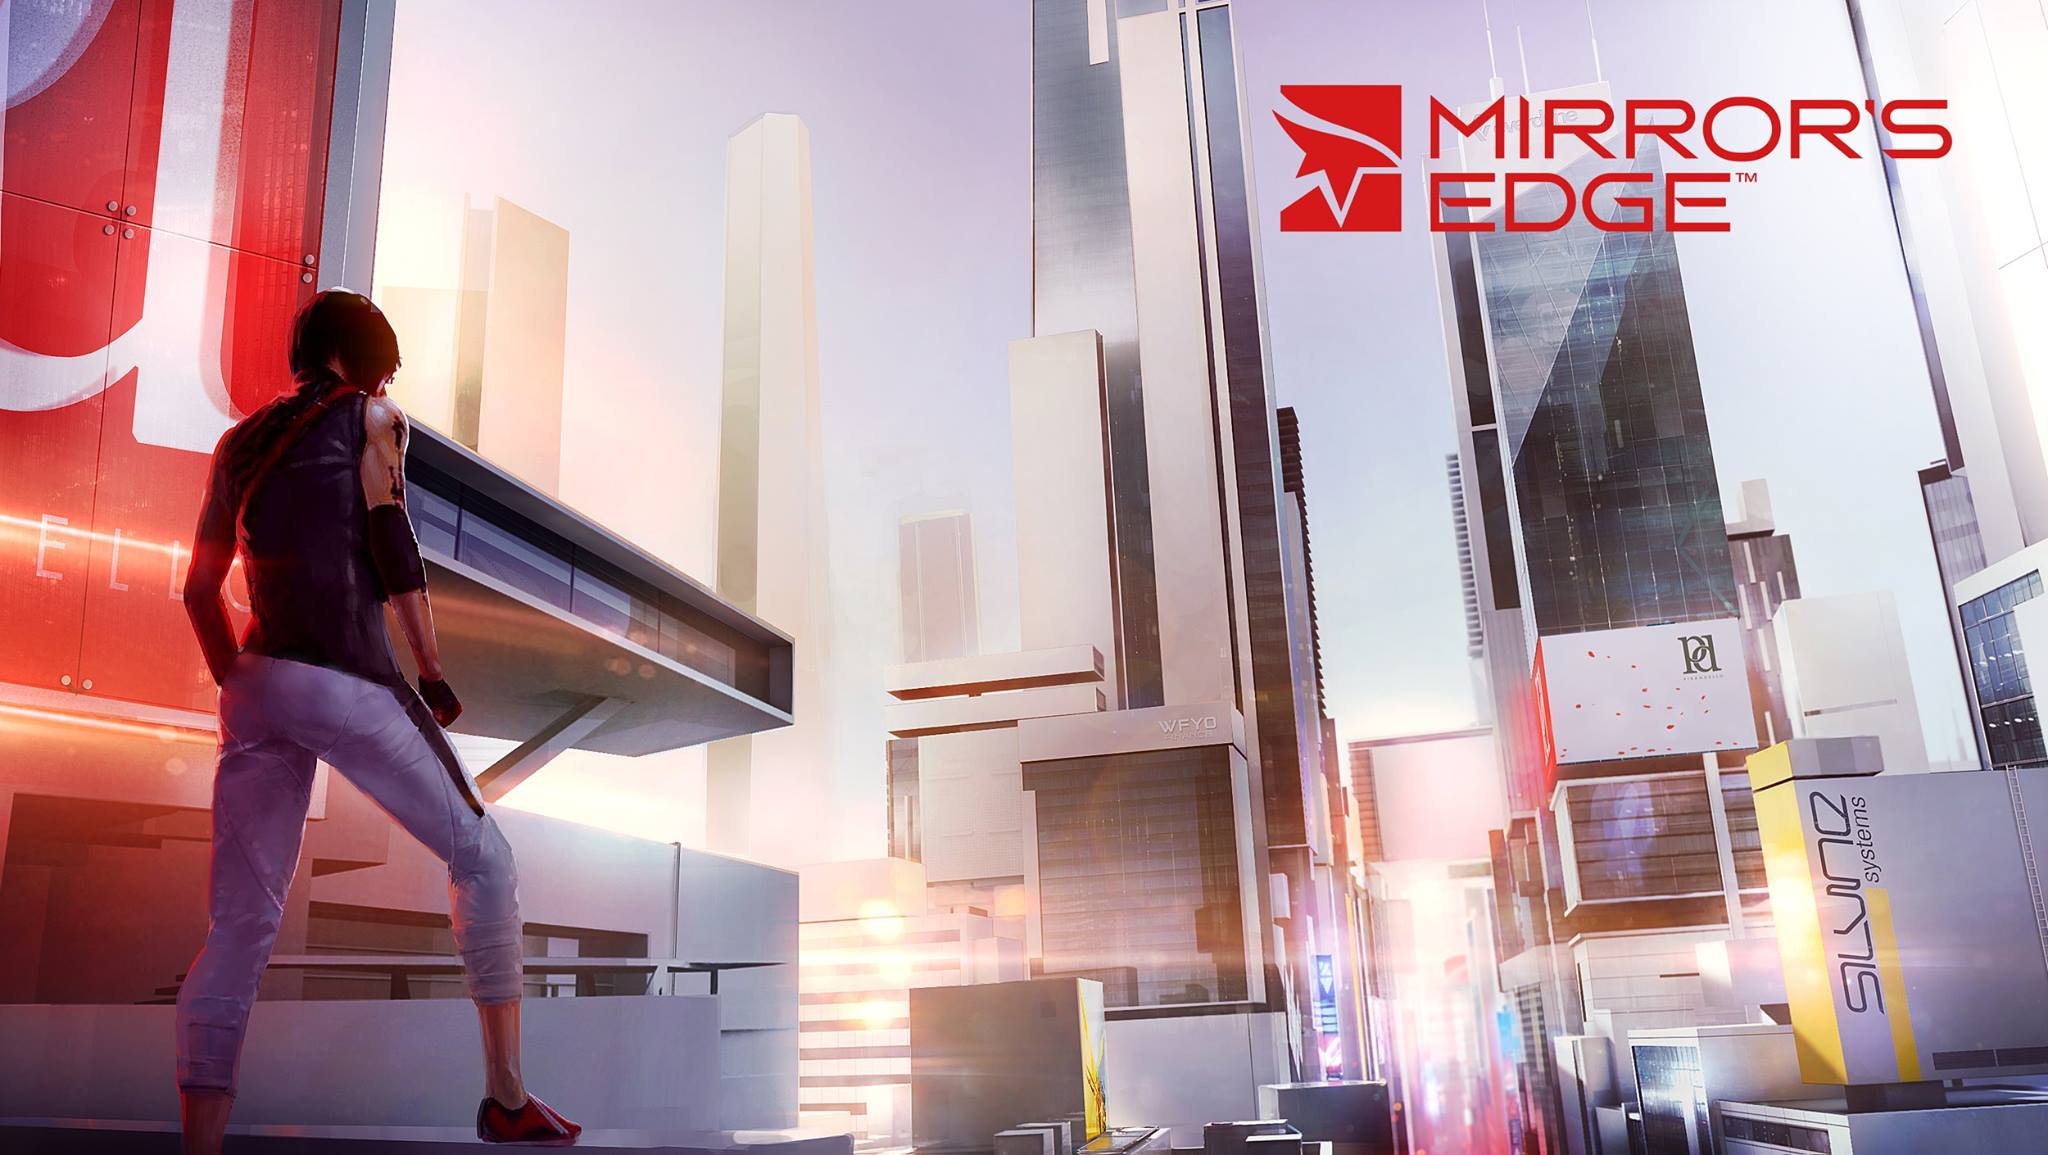 mirrors-edge-new-concept-art